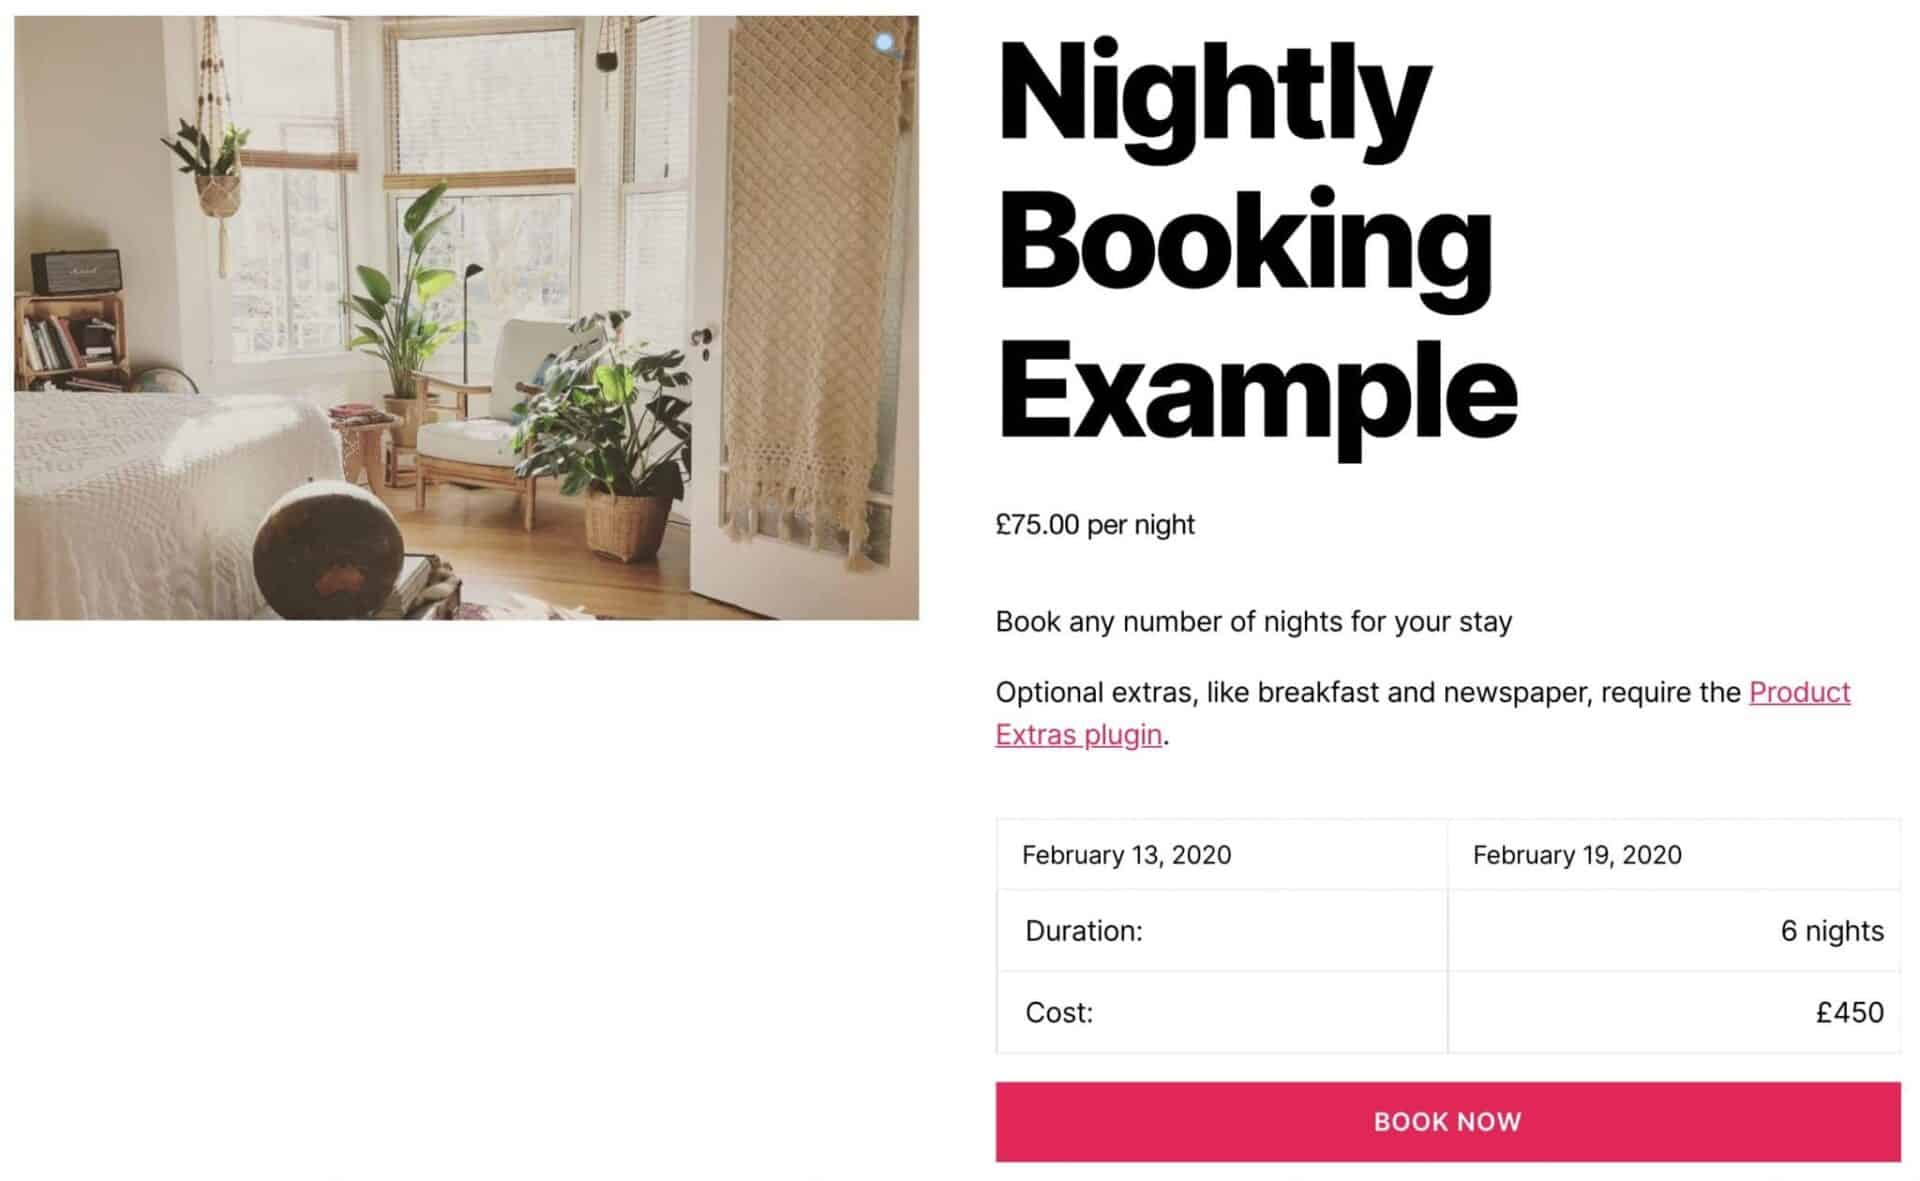 WooCommerce bookable product by night